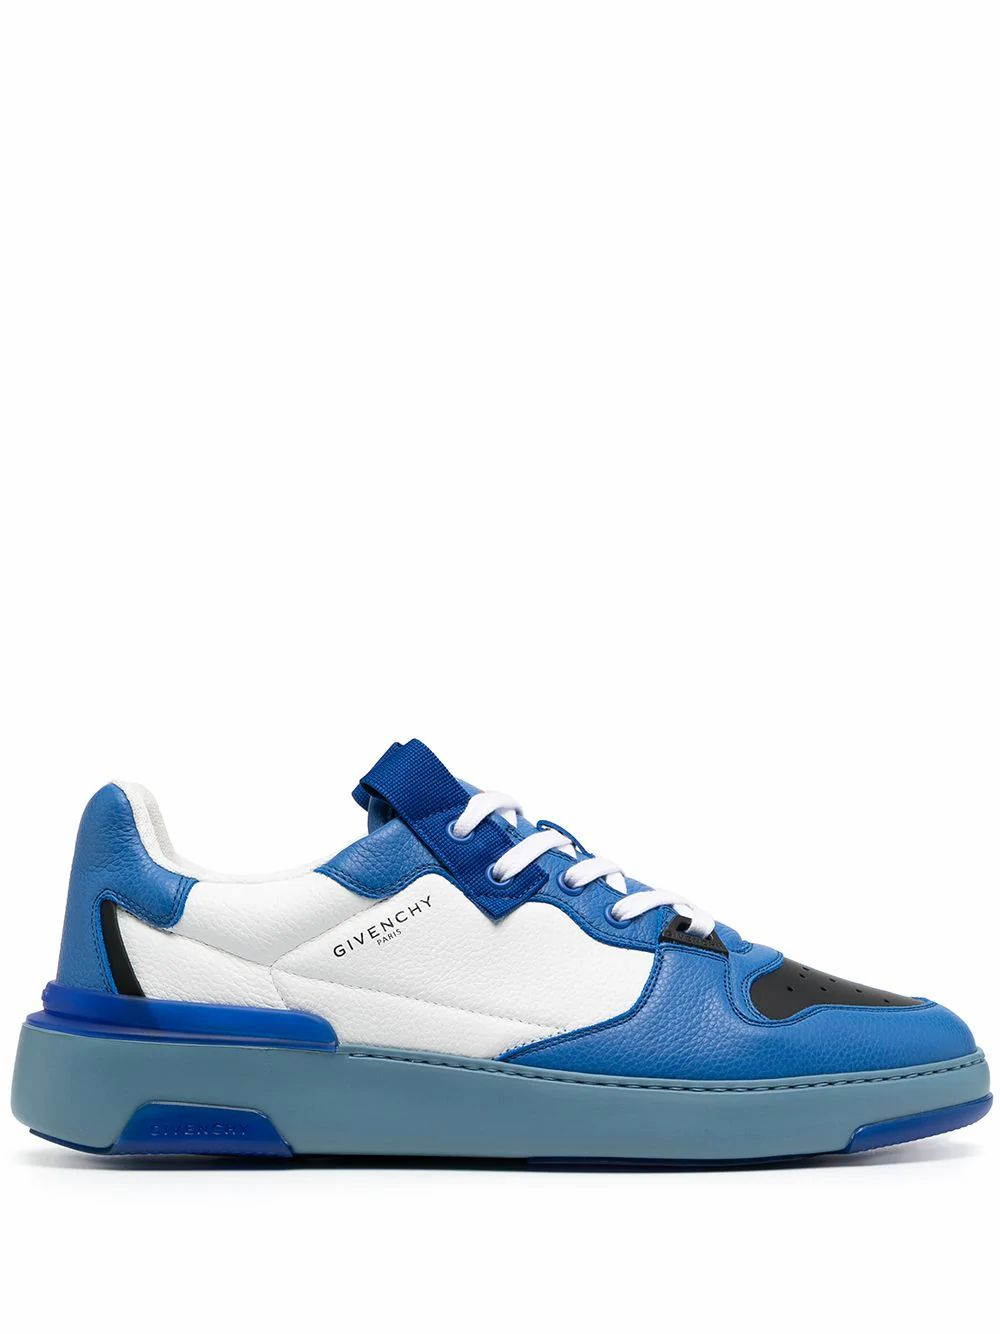 Givenchy GIVENCHY MEN'S BH002KH0SP114 BLUE LEATHER SNEAKERS